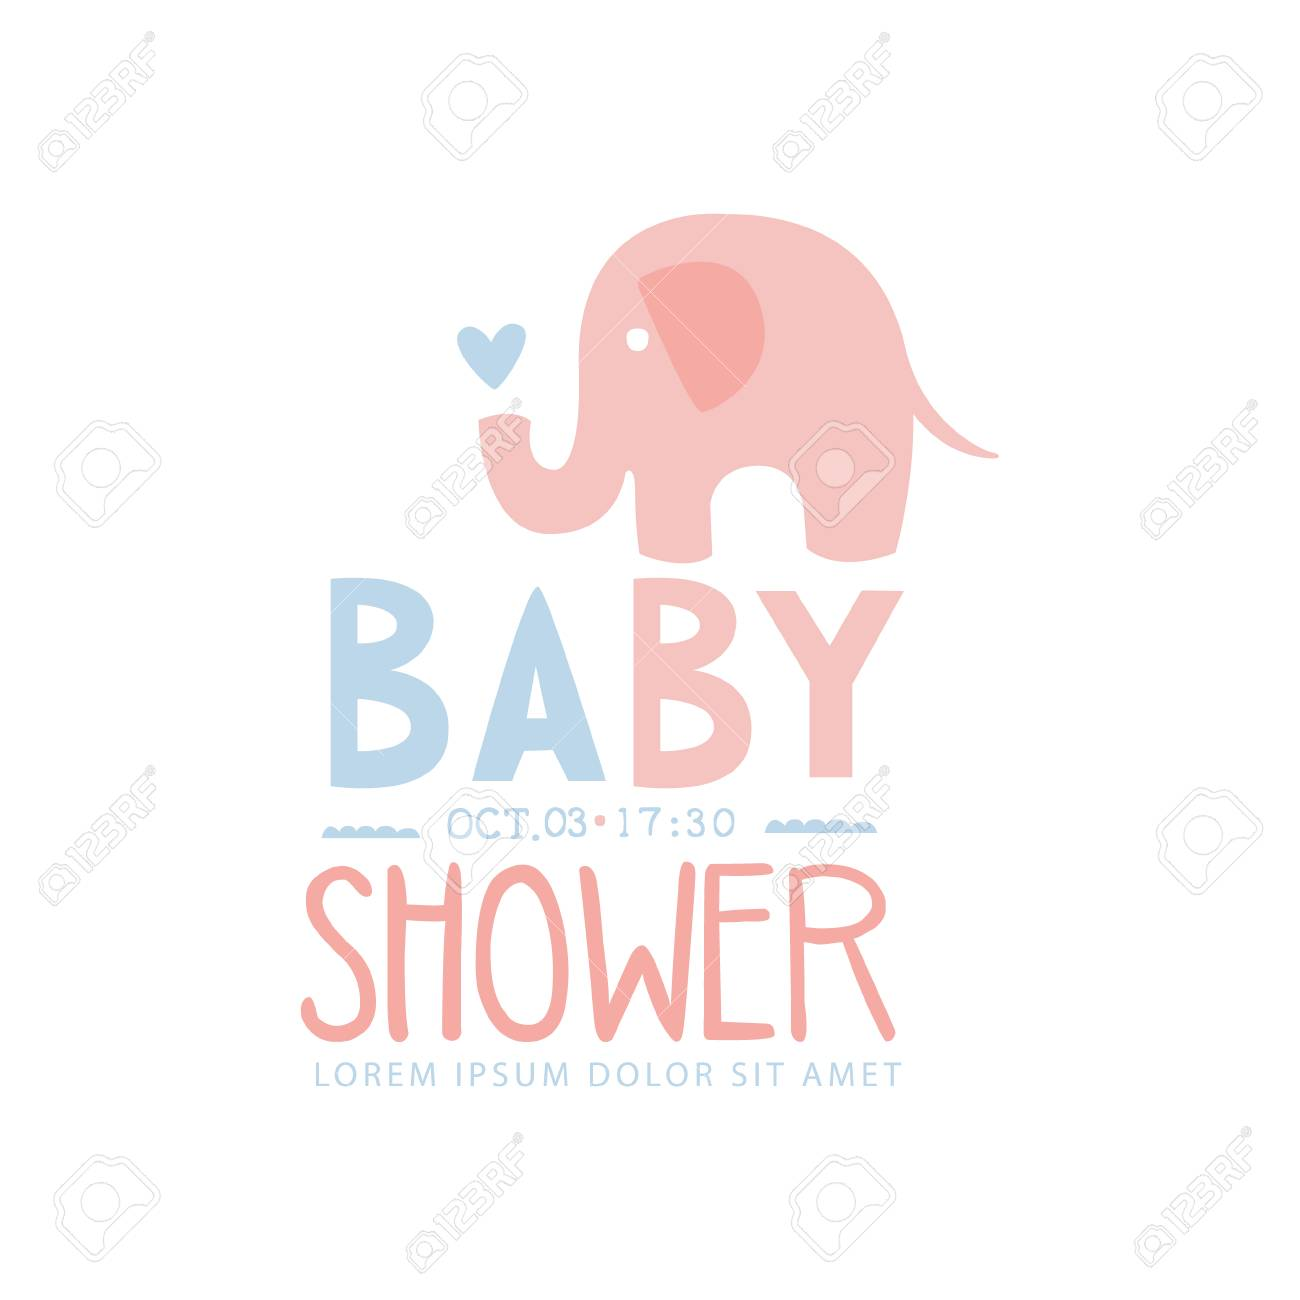 baby shower invitation design template with toy elephant